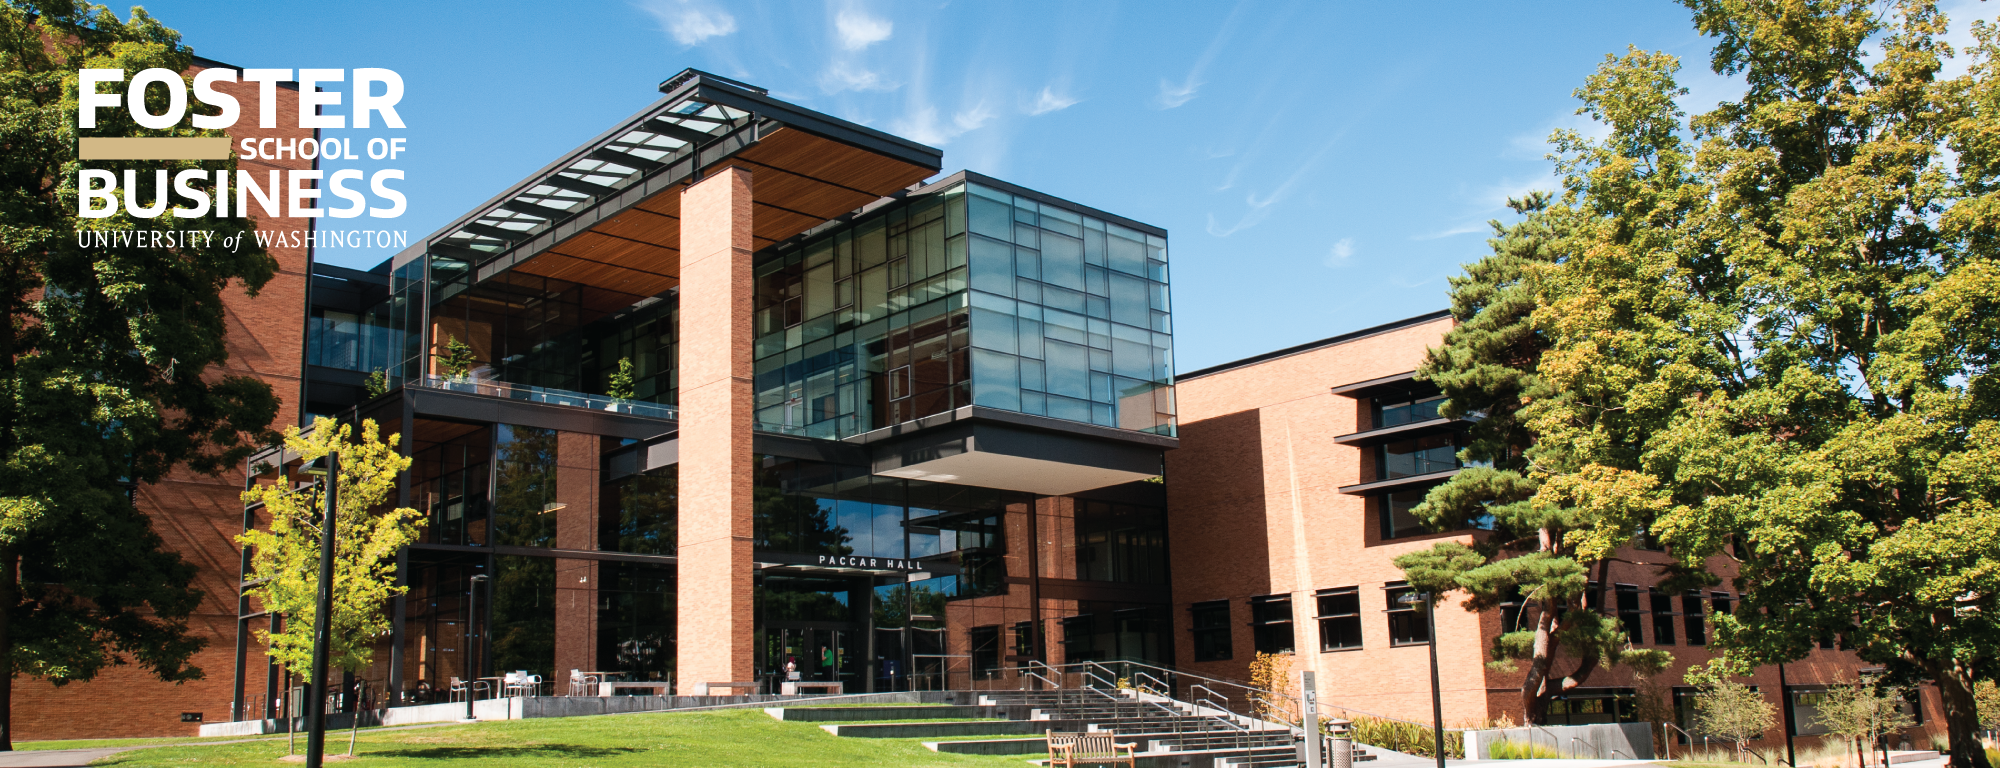 Foster School of Business - University of Washington